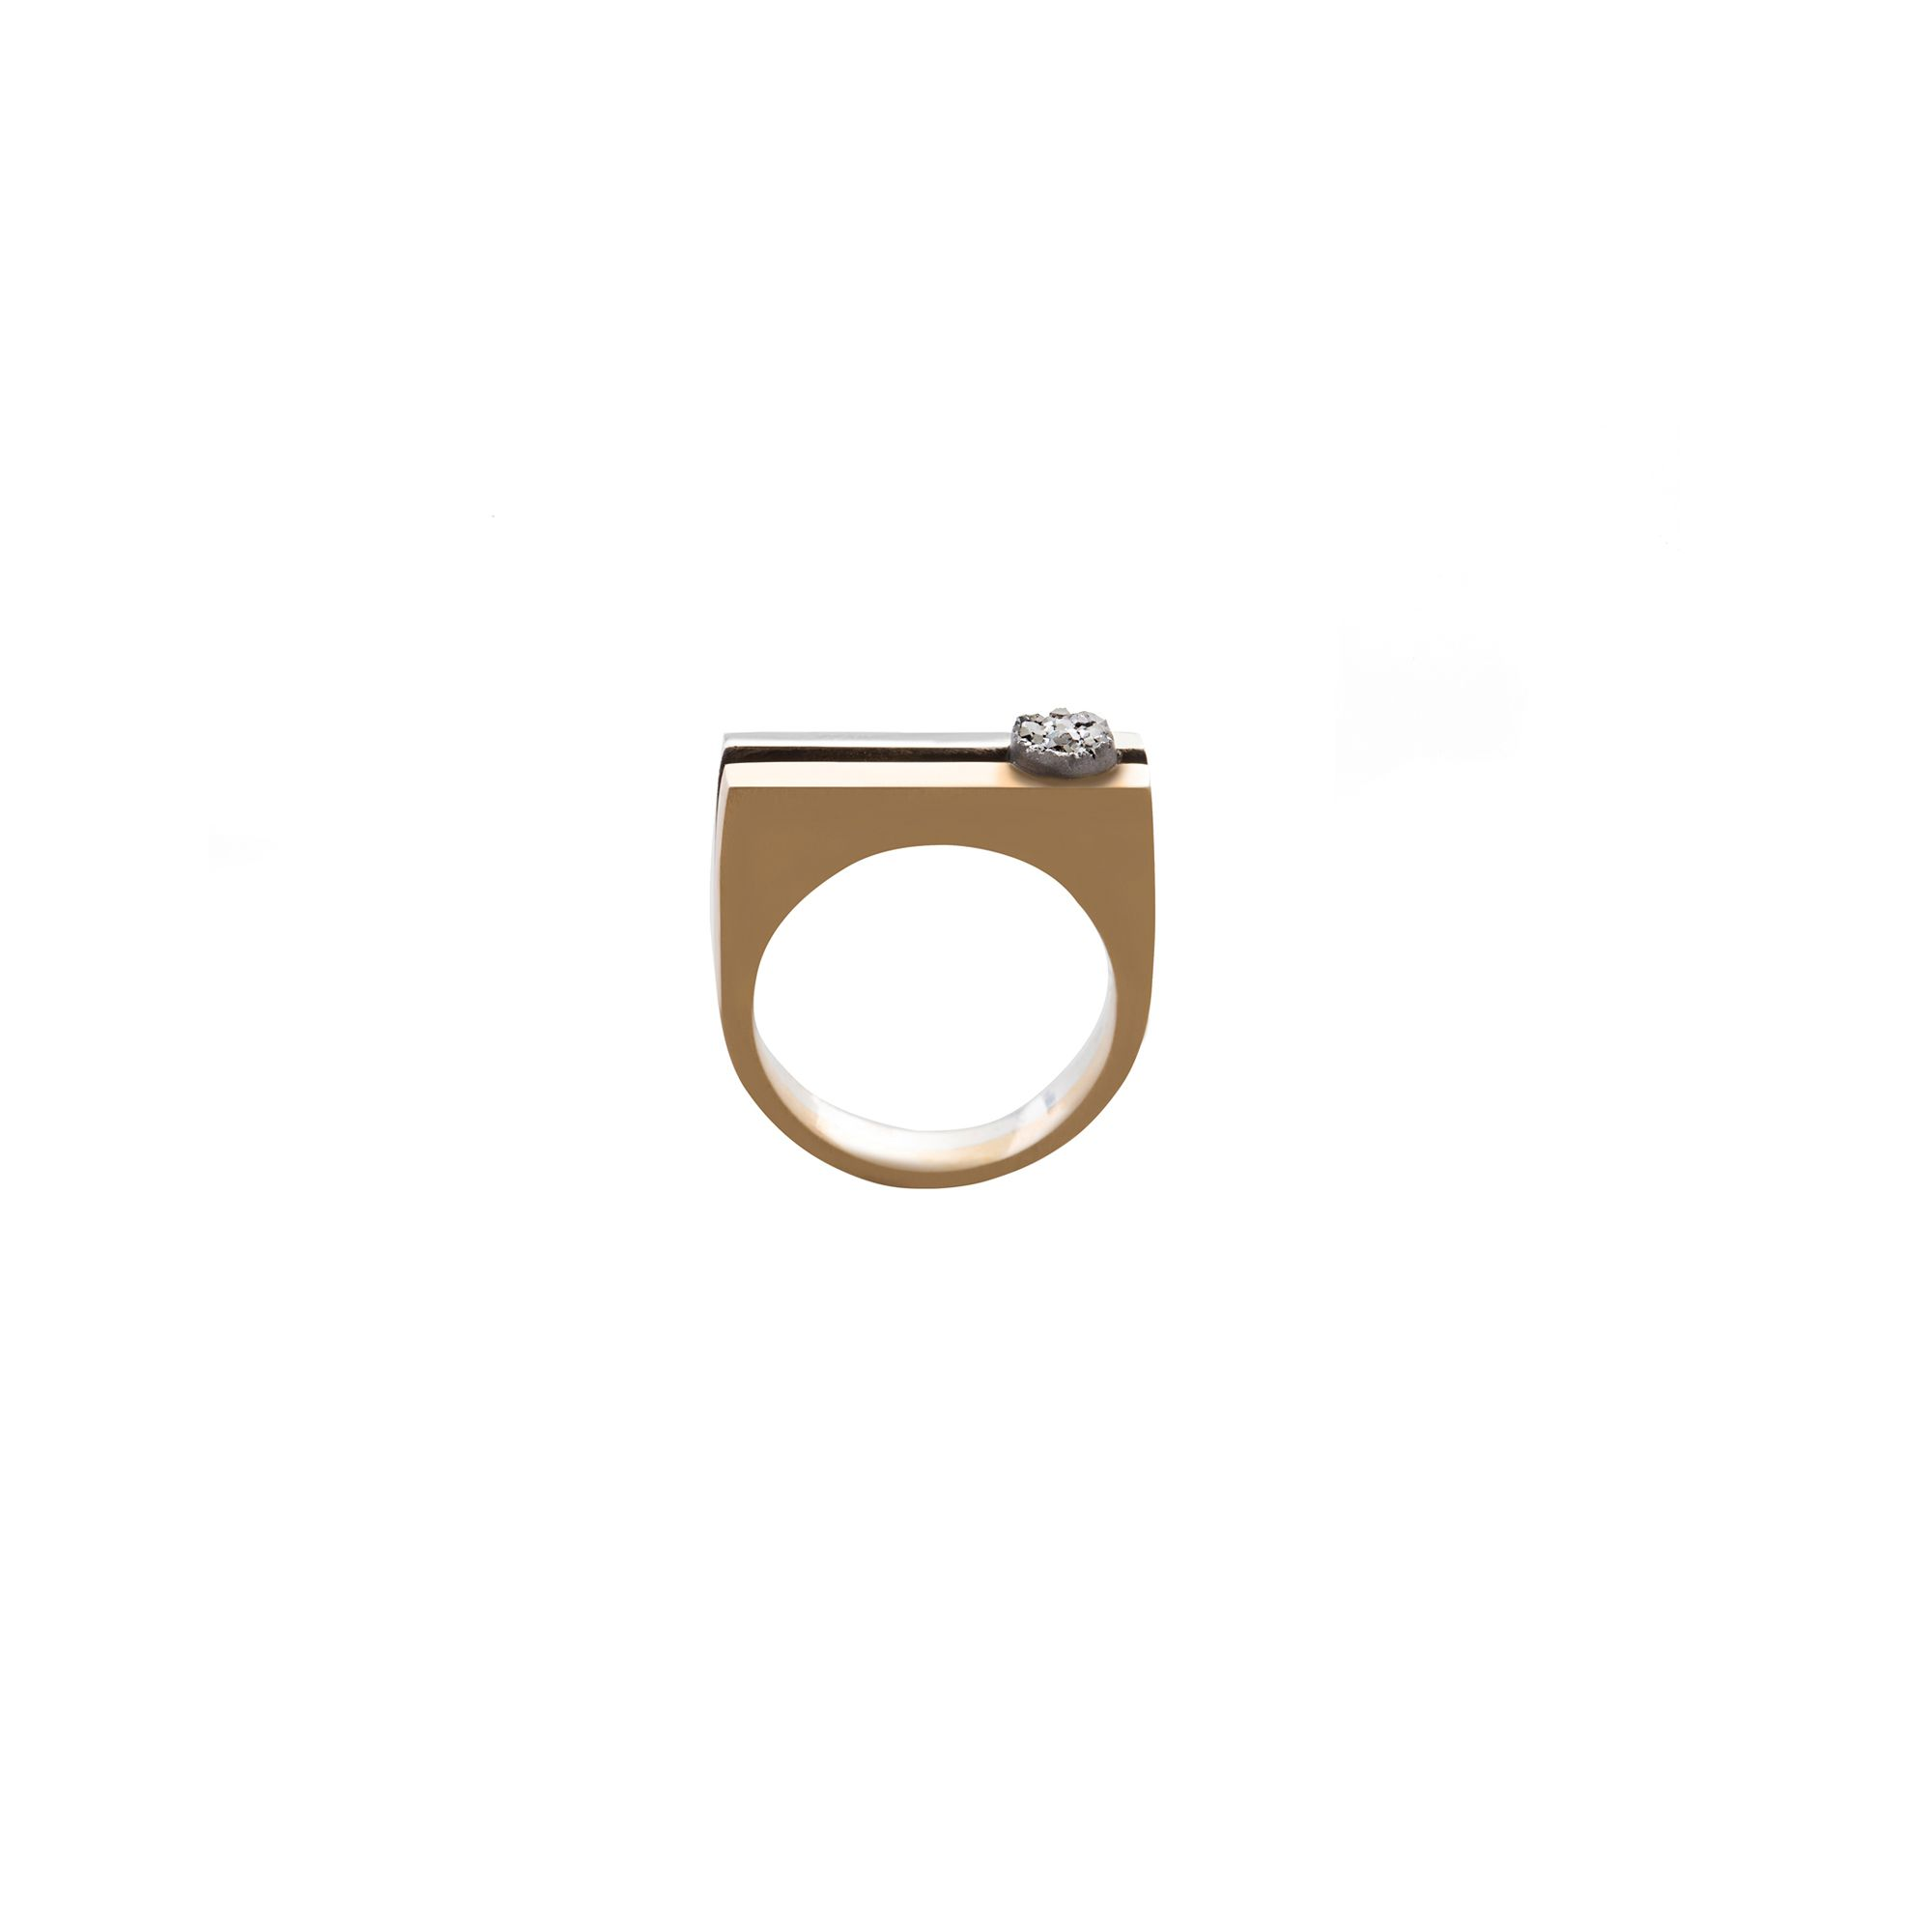 'Congiunzioni' double ring with drusa Silver and bronze ring with mineral